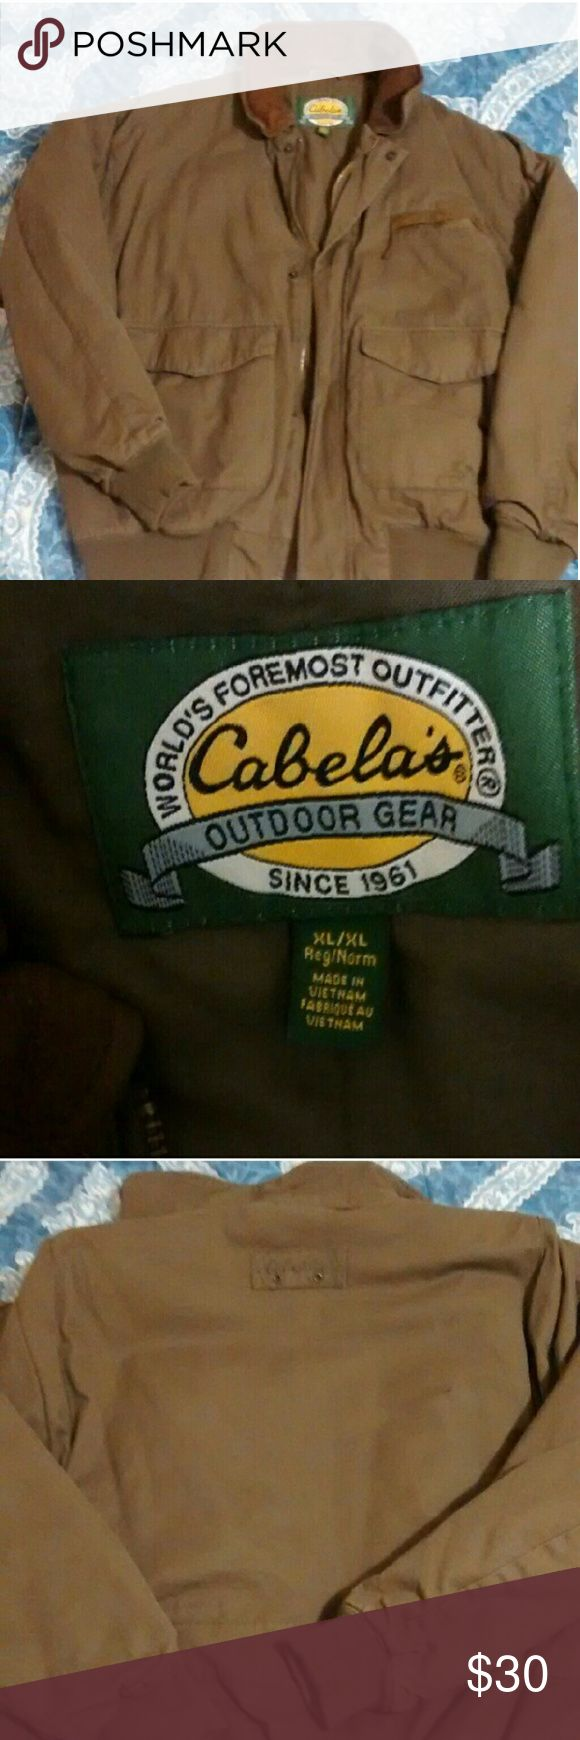 Cabela's  mens working/hunting coat XL It's in excellent condition.. only worn a couple of times Cabela's Jackets & Coats Bomber & Varsity